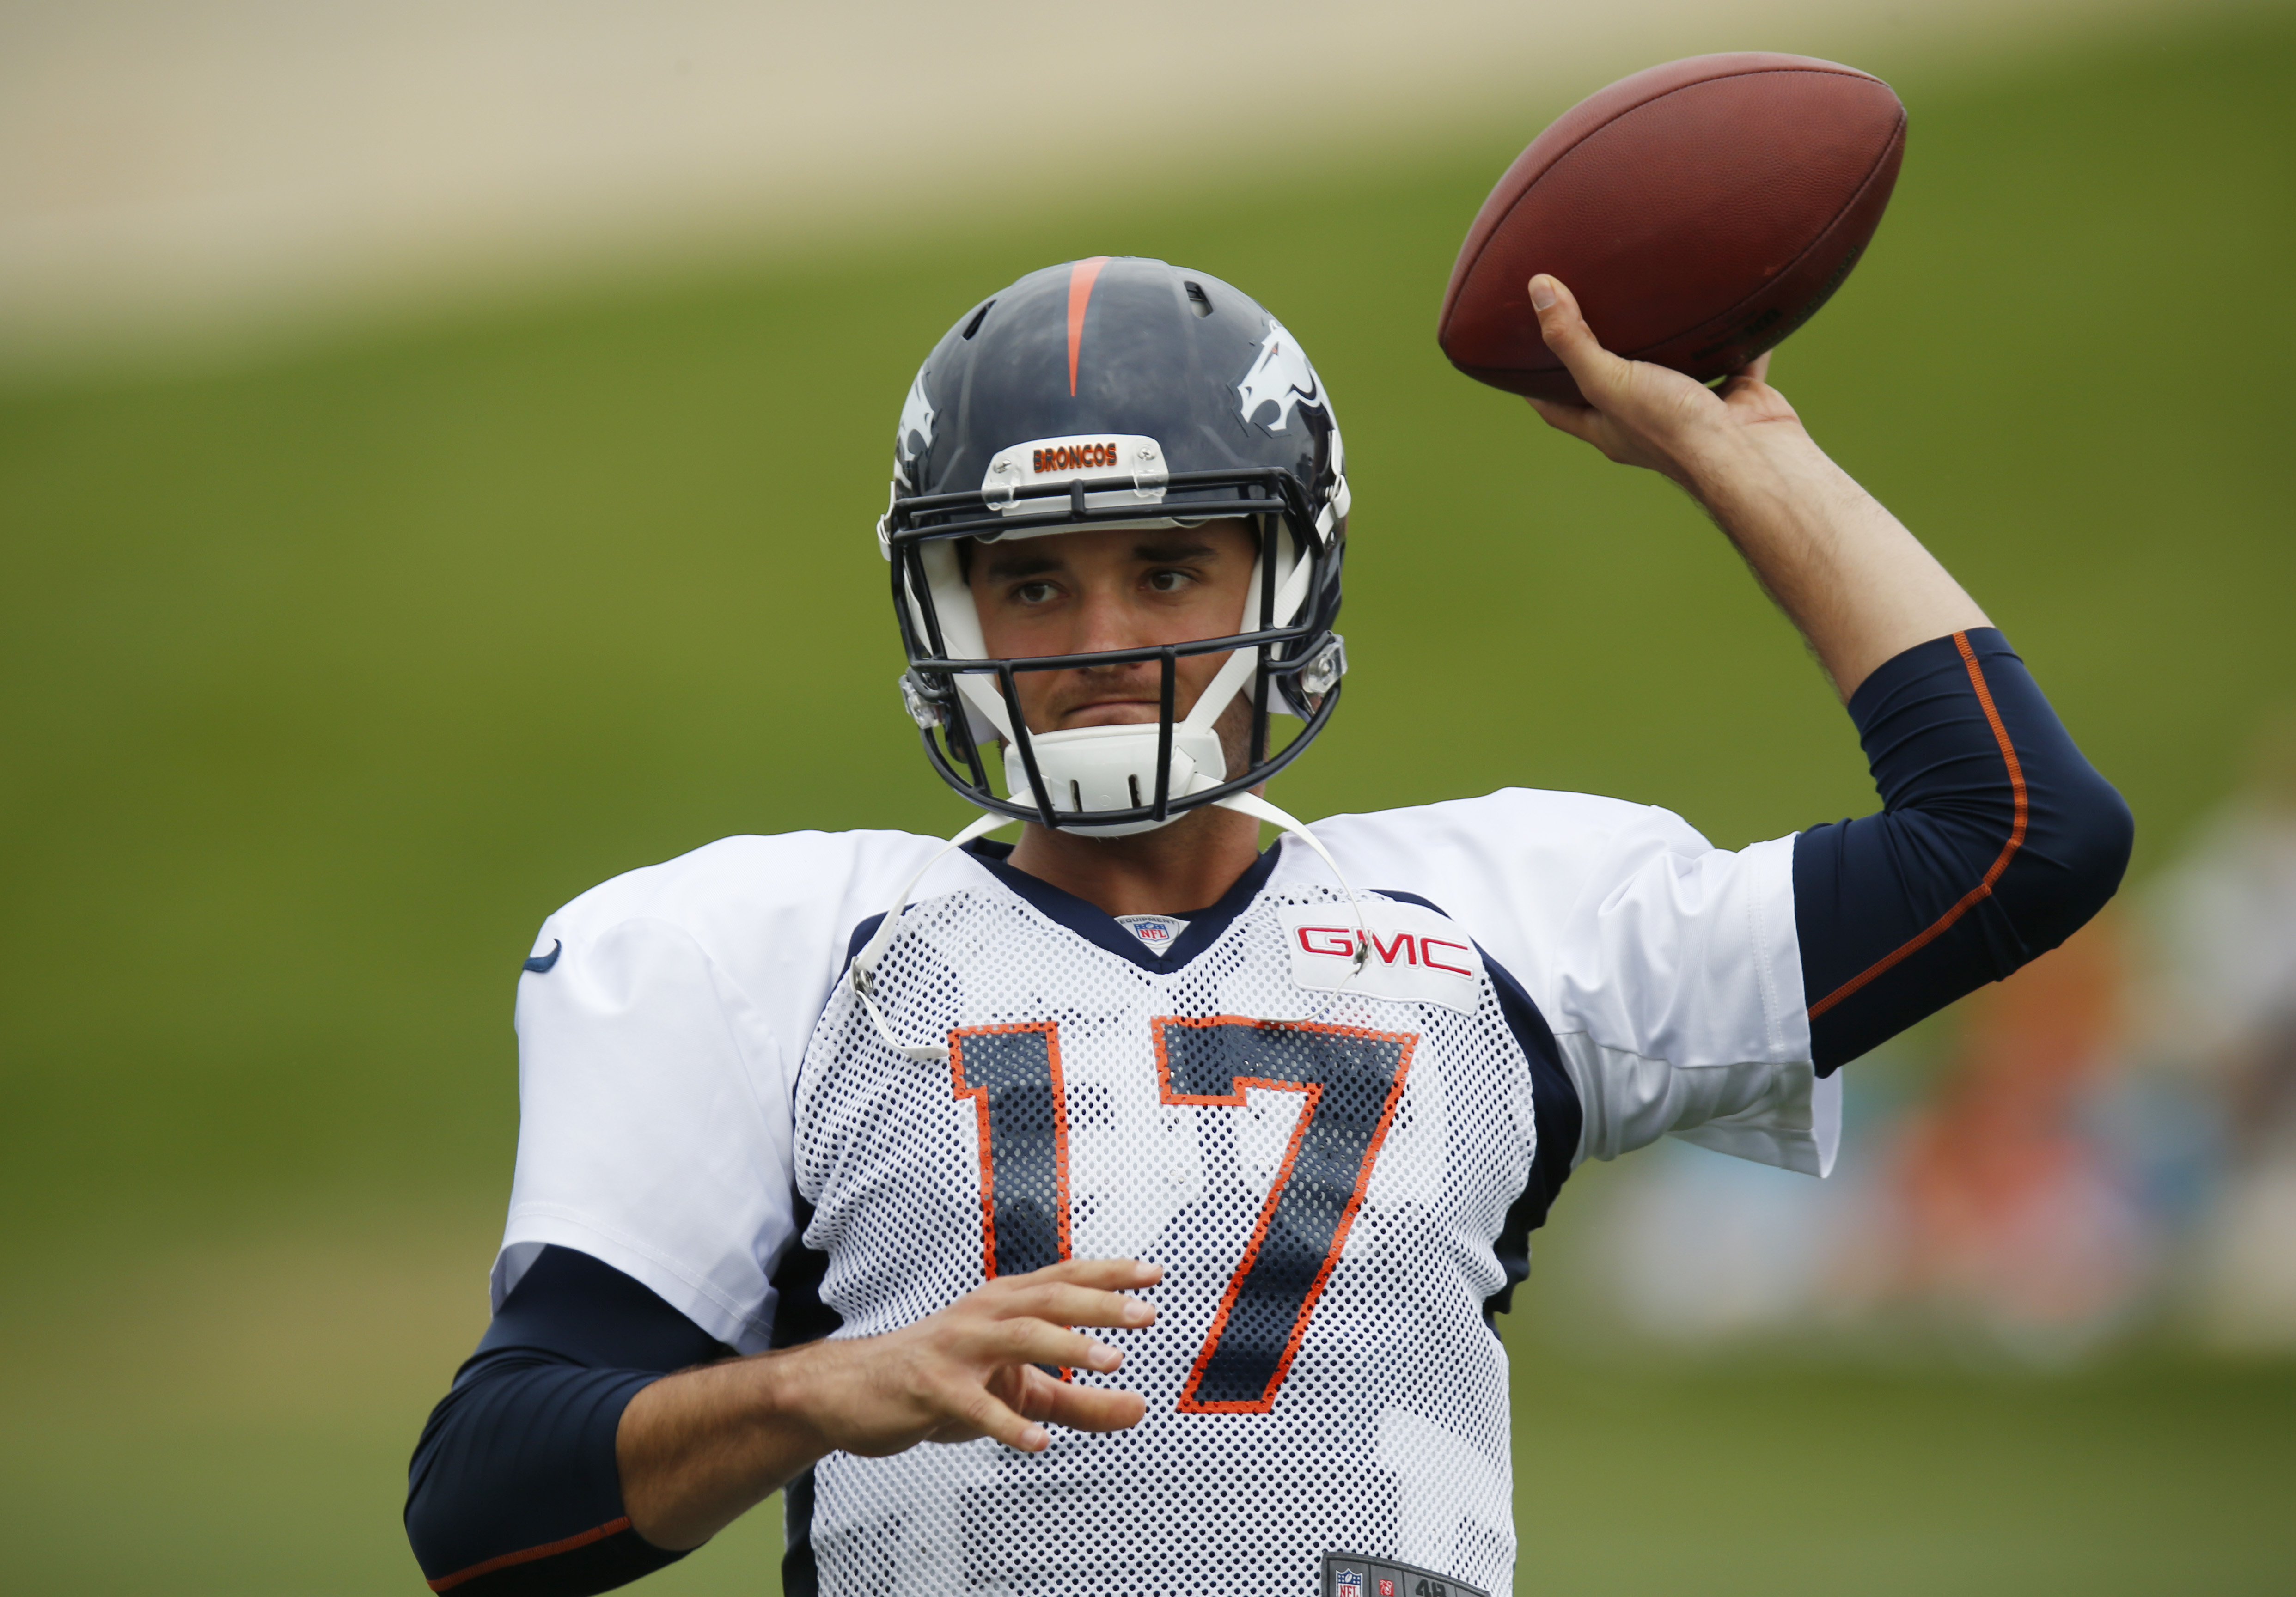 Denver Broncos quarterback Brock Osweiler, who is a right-handed passer, jokes with teammates by using his left hand to throw the ball at the team's NFL football training camp Monday, Aug. 3, 2015, in Englewood, Colo. (AP Photo/David Zalubowski)